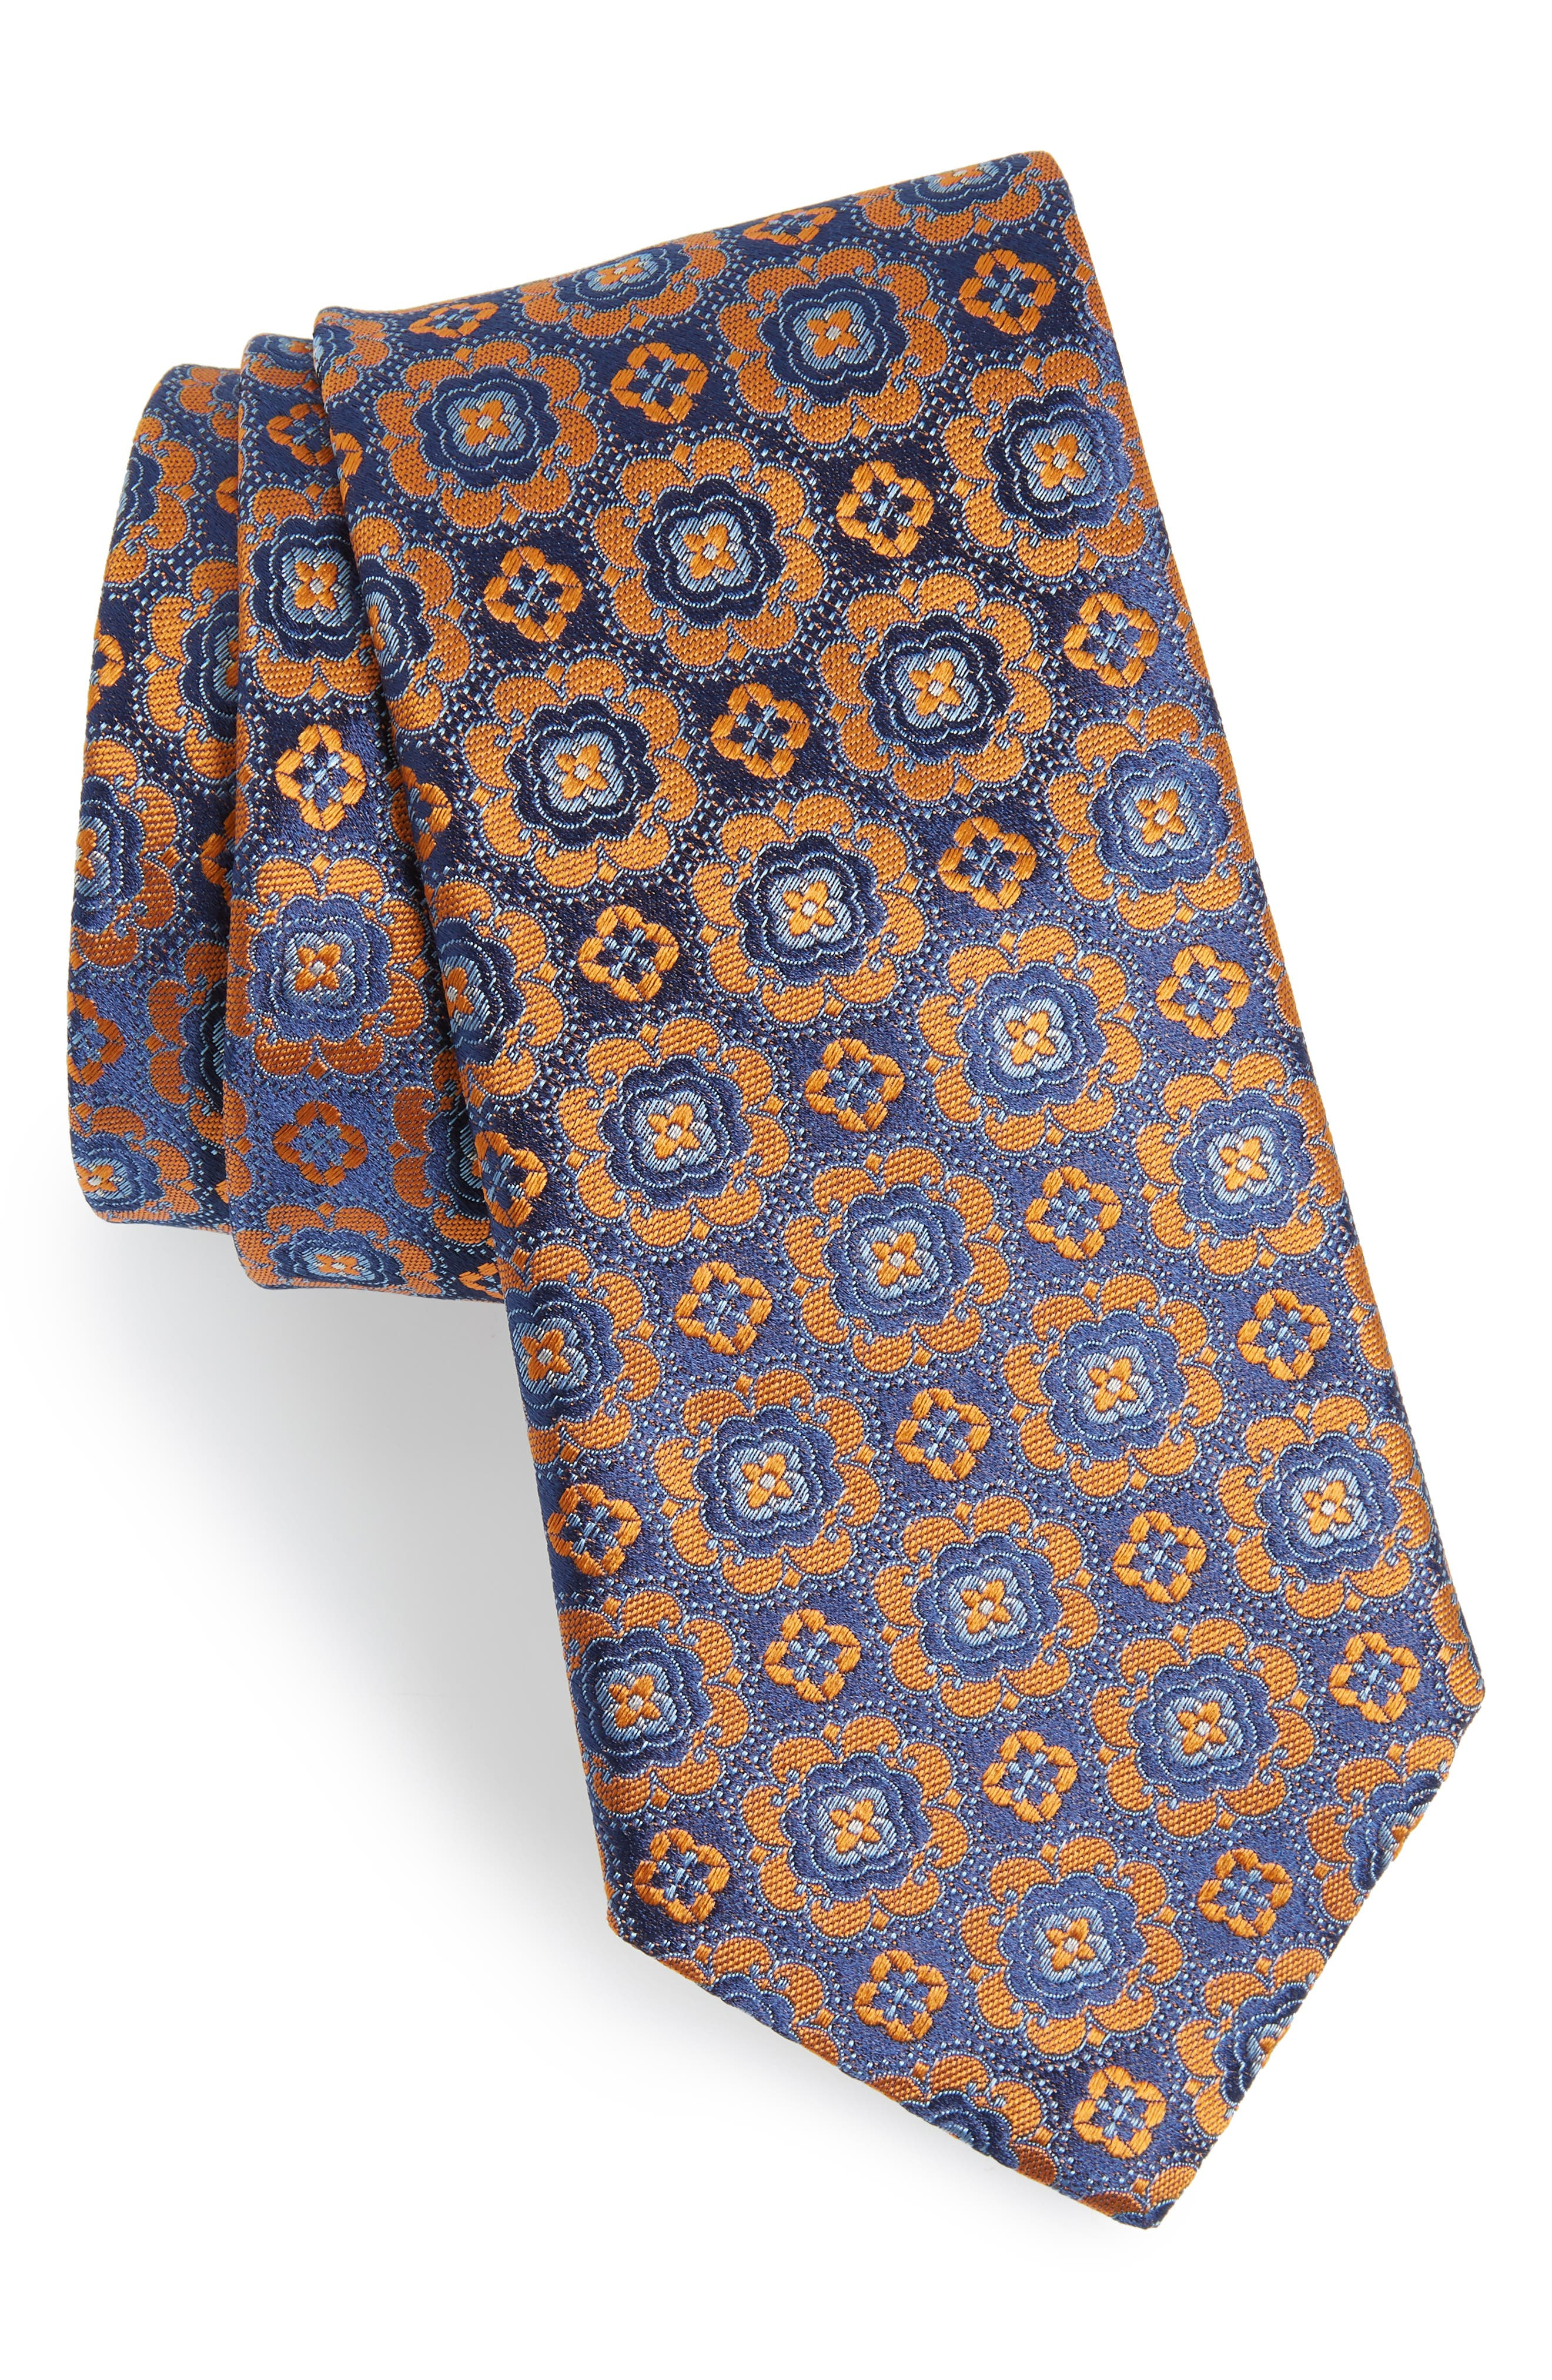 Medallion Silk Tie,                         Main,                         color, 800